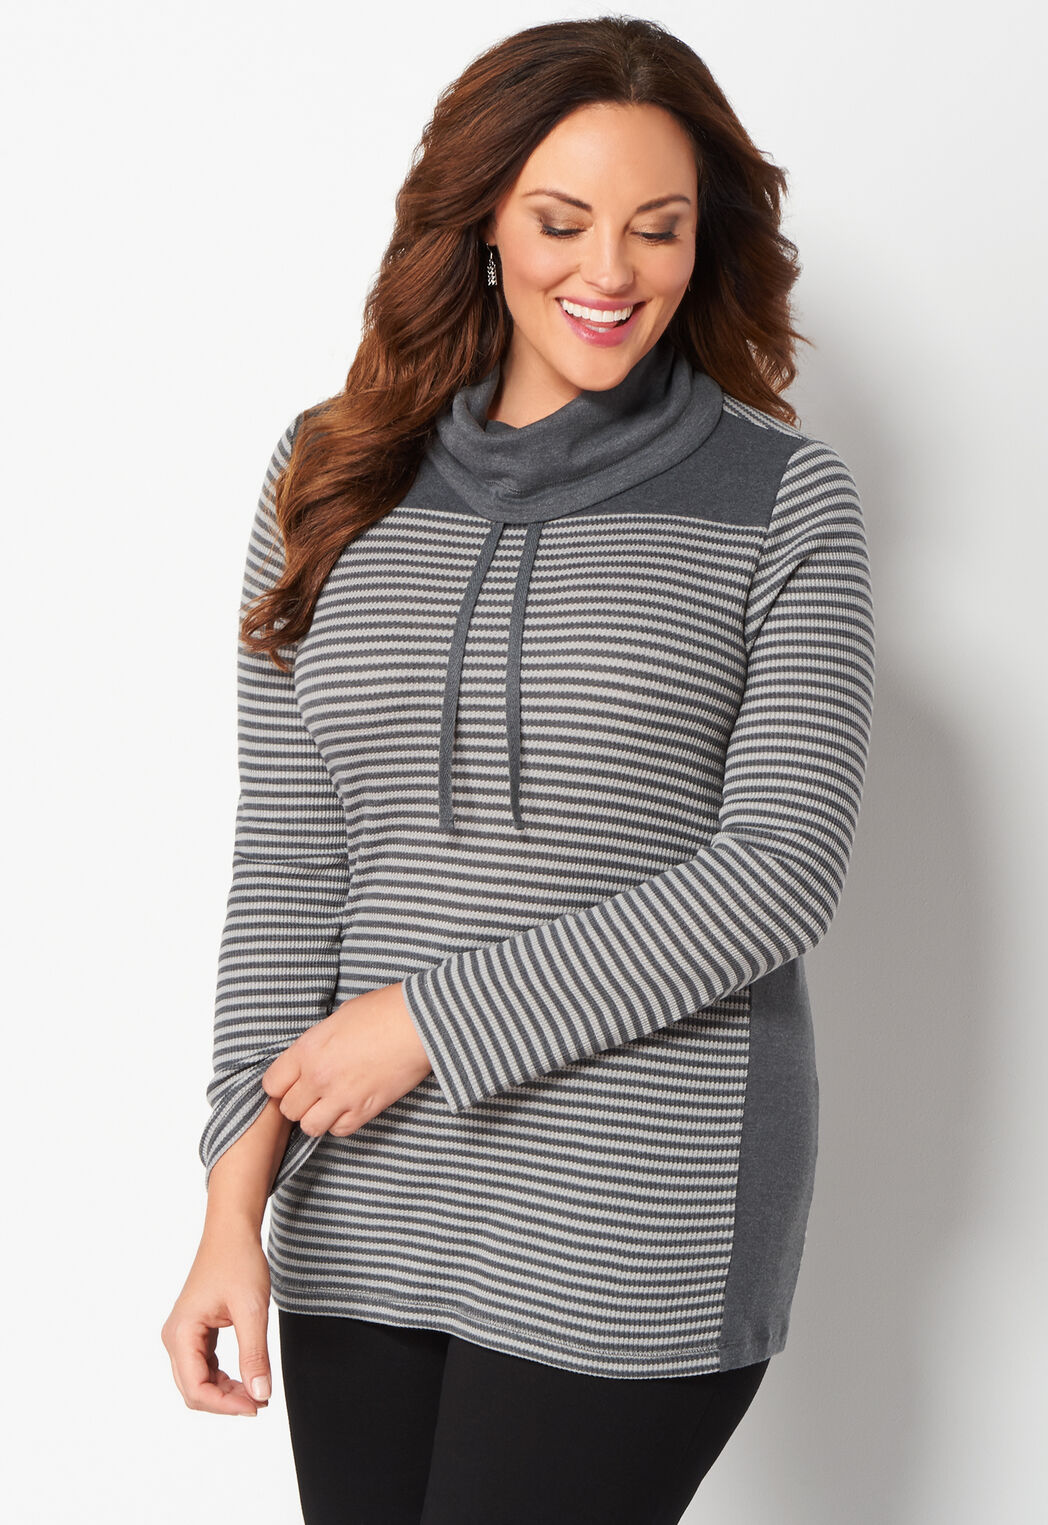 women's striped funnel neck thermal plus size knit top from